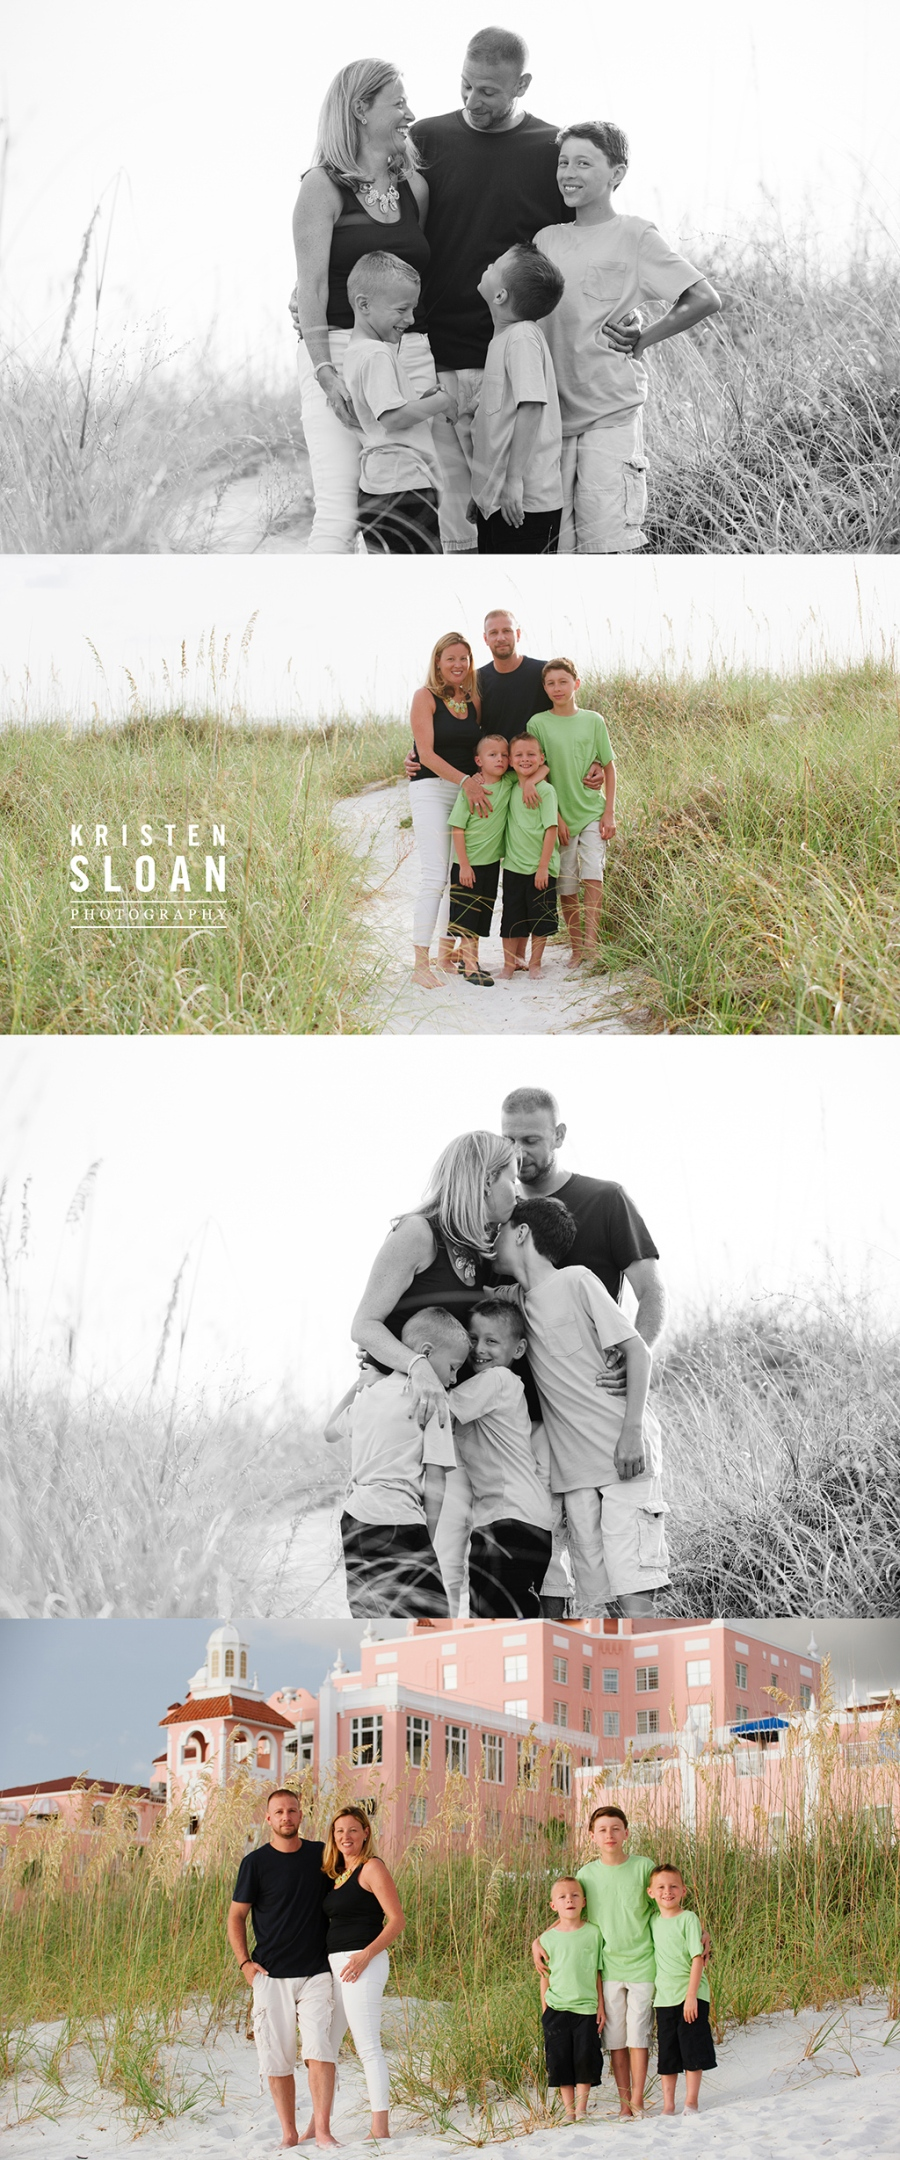 Don Cesar Beach Photos | Don Cesar Hotel Family Beach Portrait Photos | St Pete Beach Treasure Island Photographer Kristen Sloan